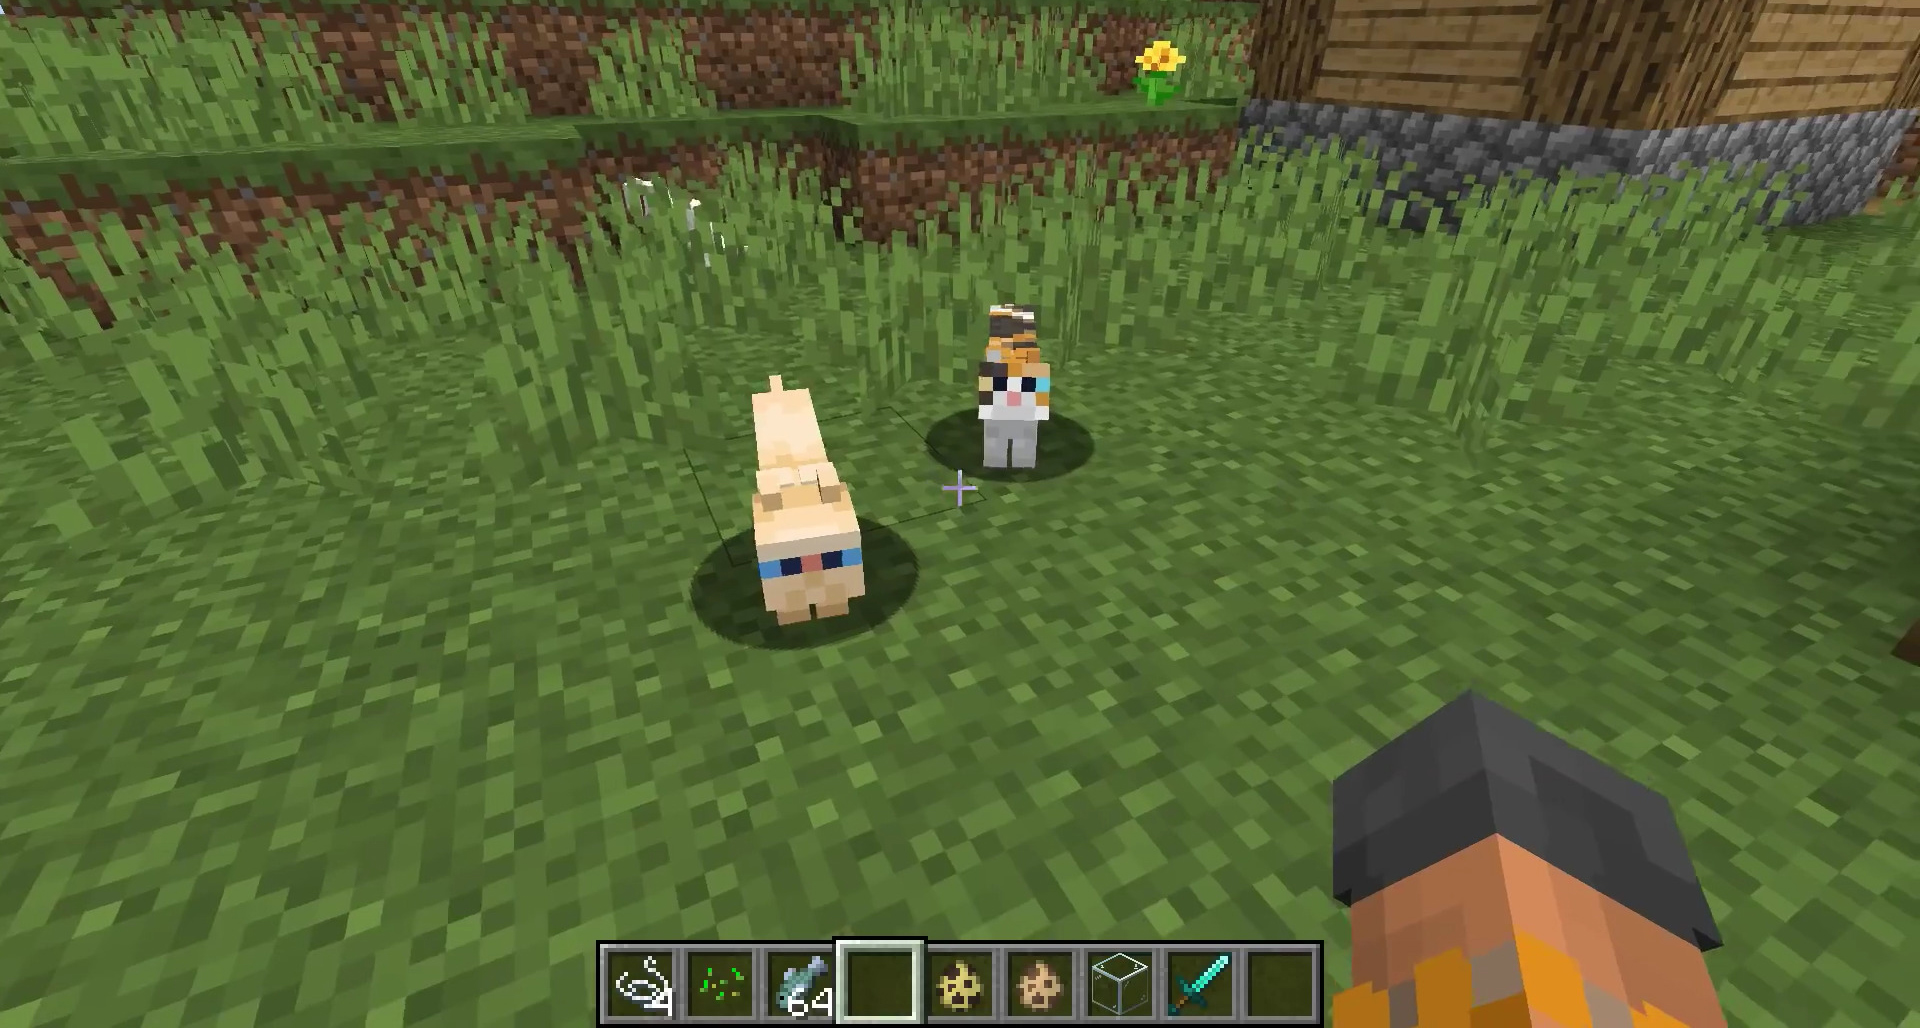 Minecraft 1.14 Snapshot 18w44a Screenshots 16